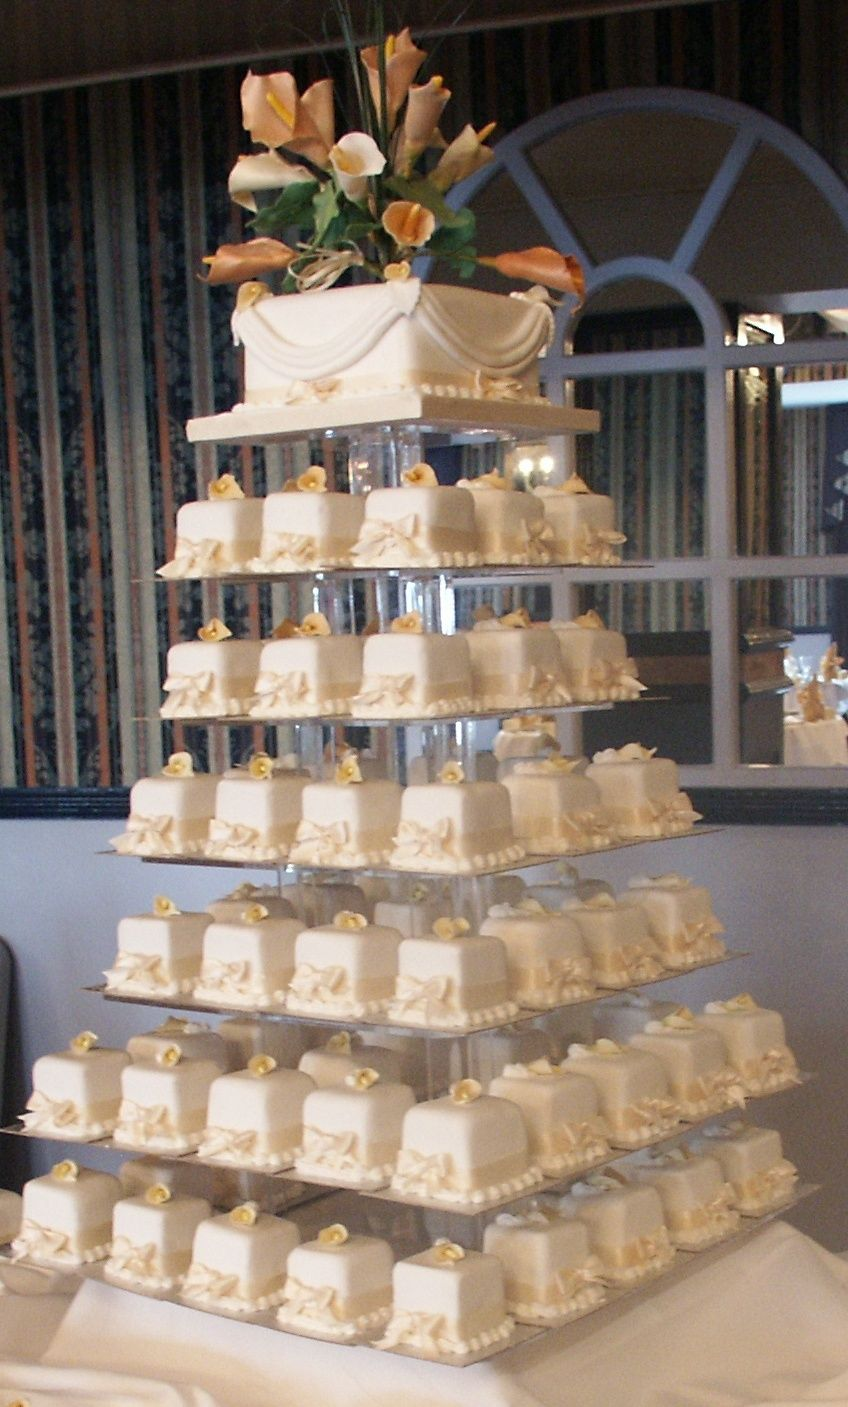 Pin By Geetha Mohan On Just A Slice Wedding Cupcakes Wedding